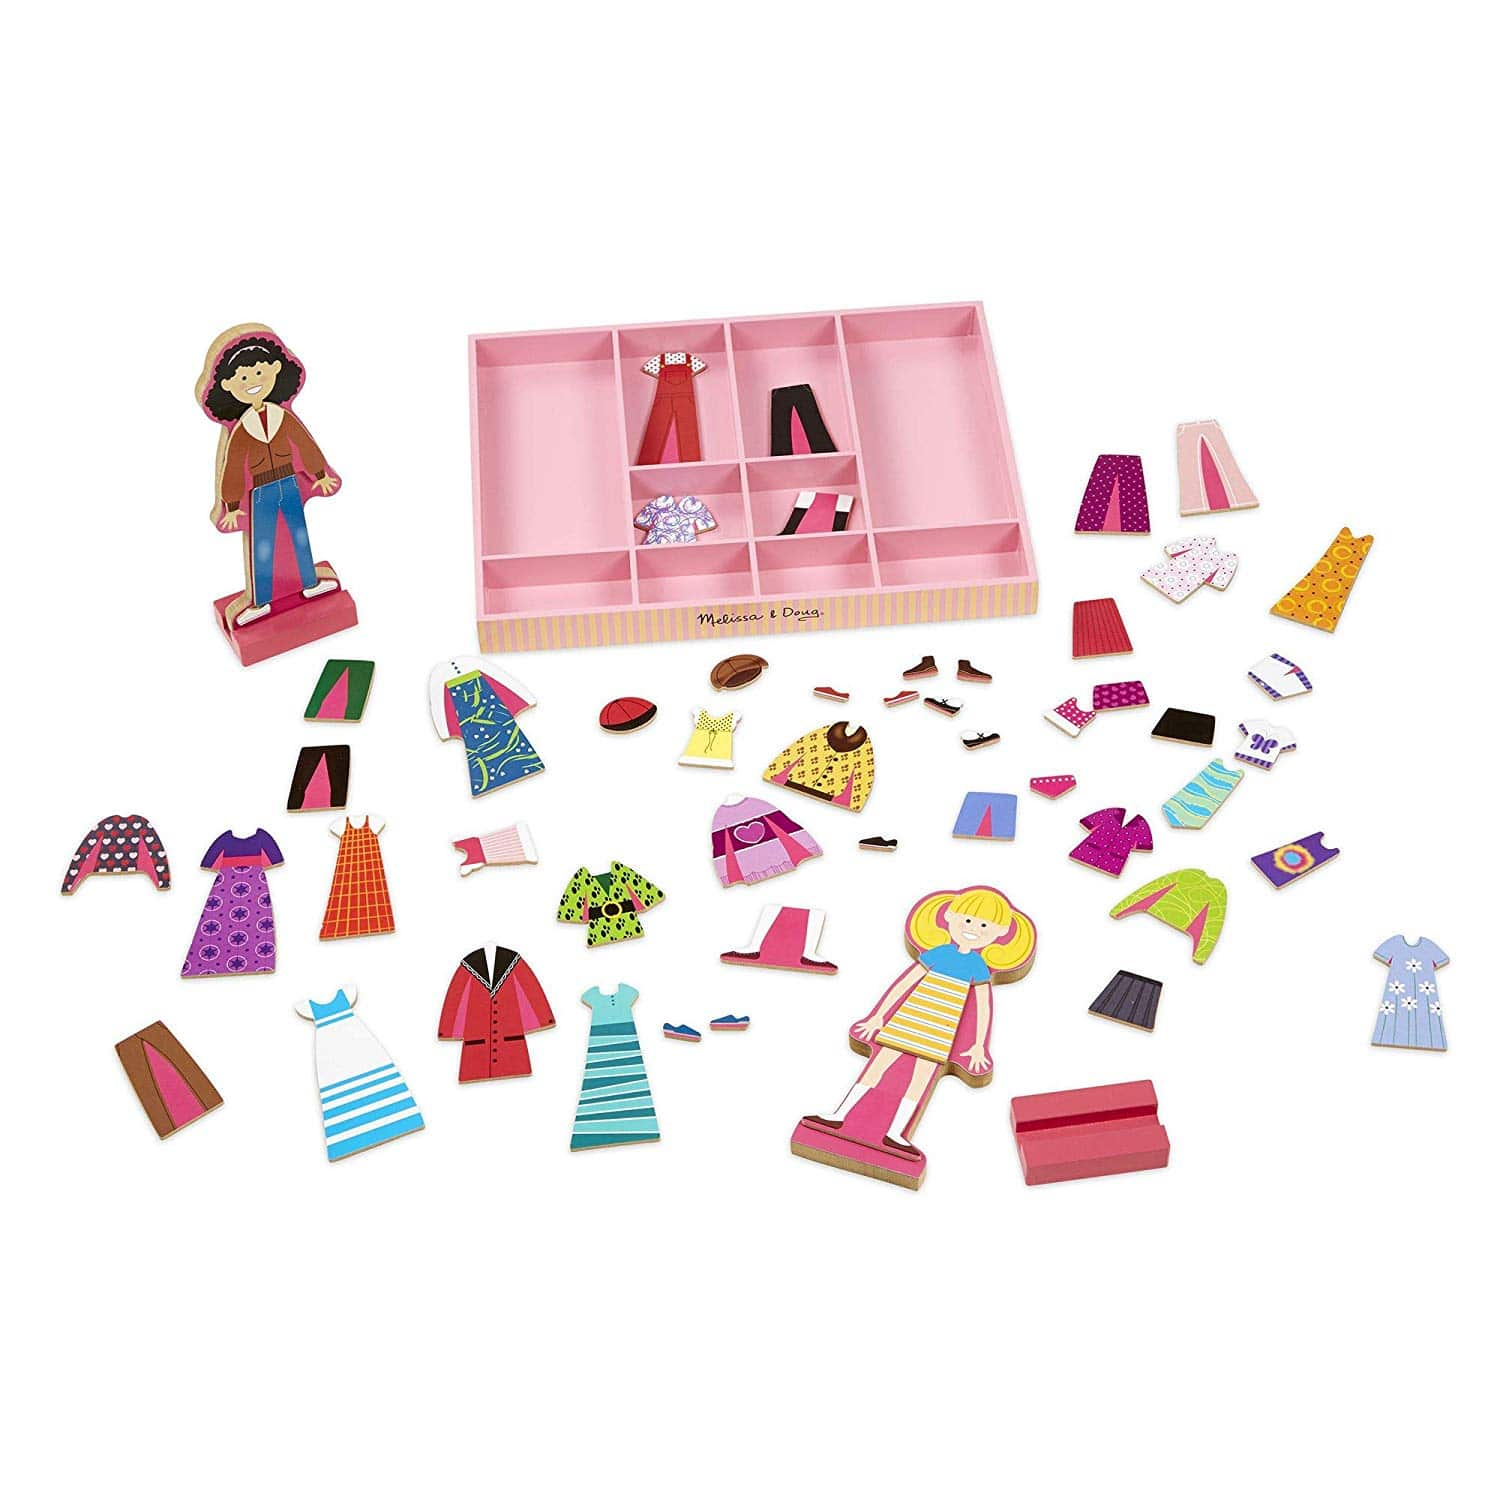 stocking-stuffers-for-kids-wooden-dolls